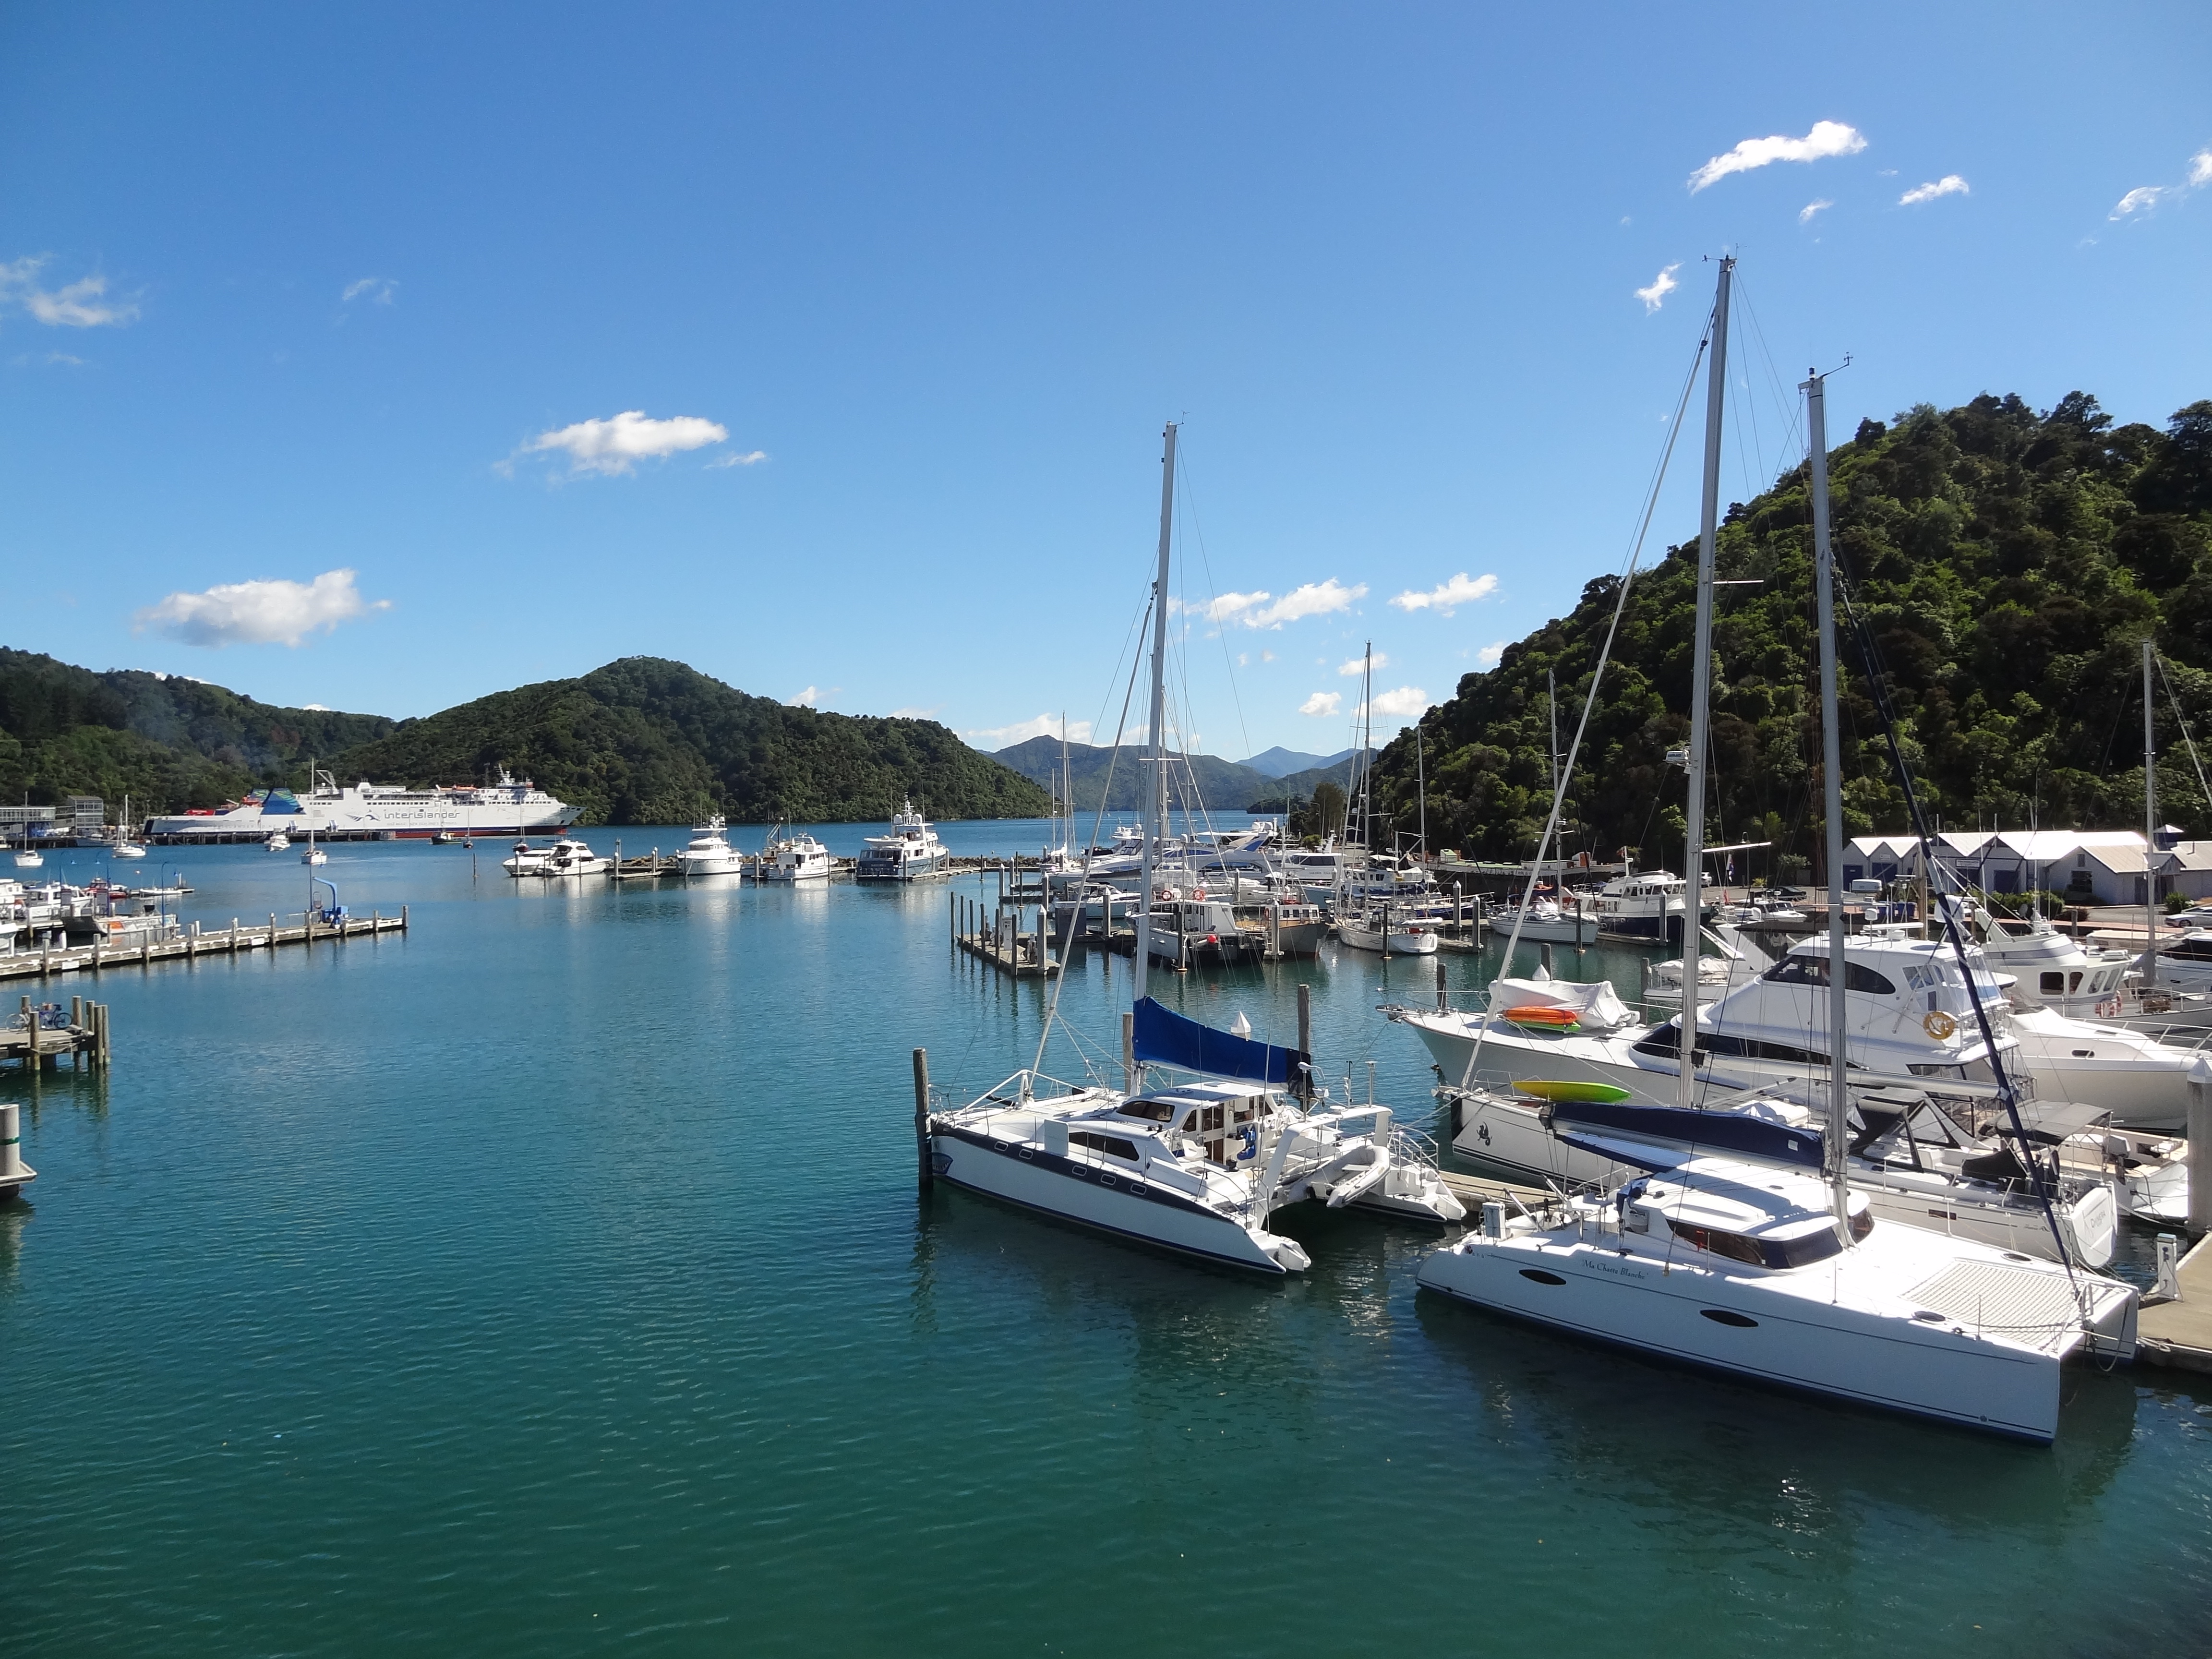 Picton, not the scruffy port town we had half expected. The big boat on the far side is one of the inter-island ferries.